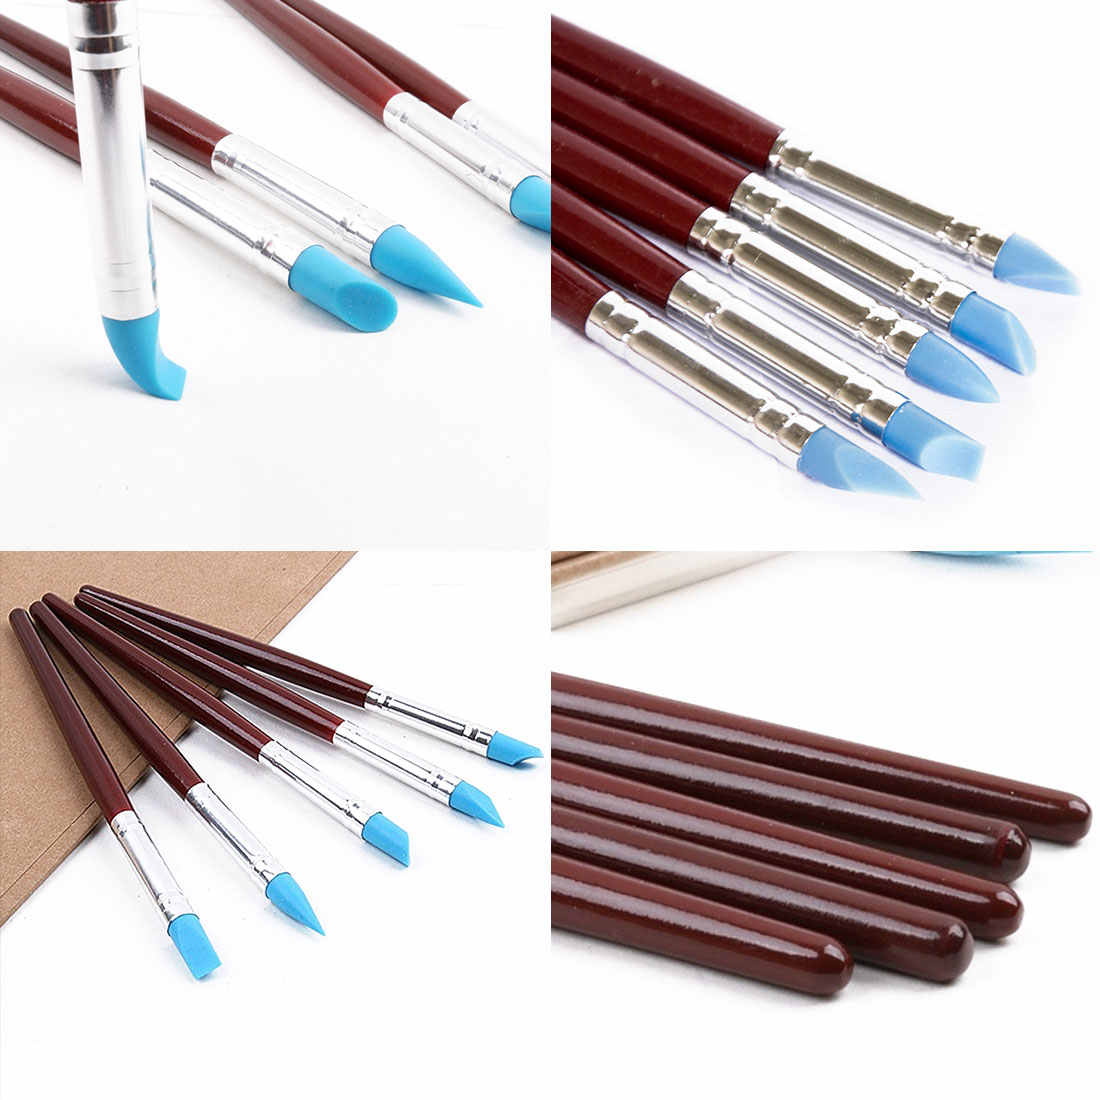 Silicone Rubber Clay Shaper Sculpting Polymer Modelling Pottery Tools 5pcs